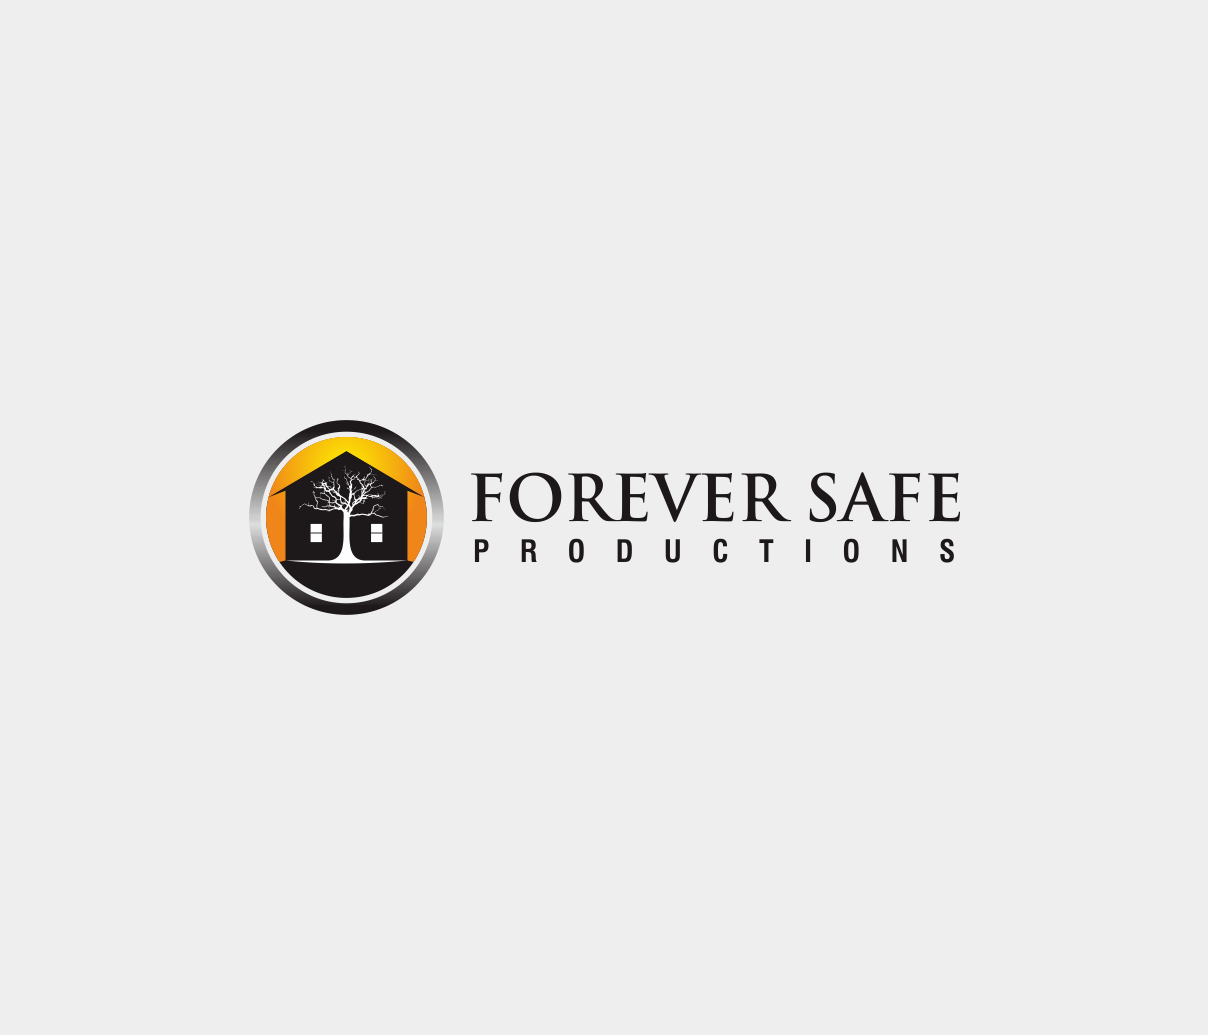 Logo Design by Armada Jamaluddin - Entry No. 39 in the Logo Design Contest Inspiring Logo Design for Forever Safe Productions.